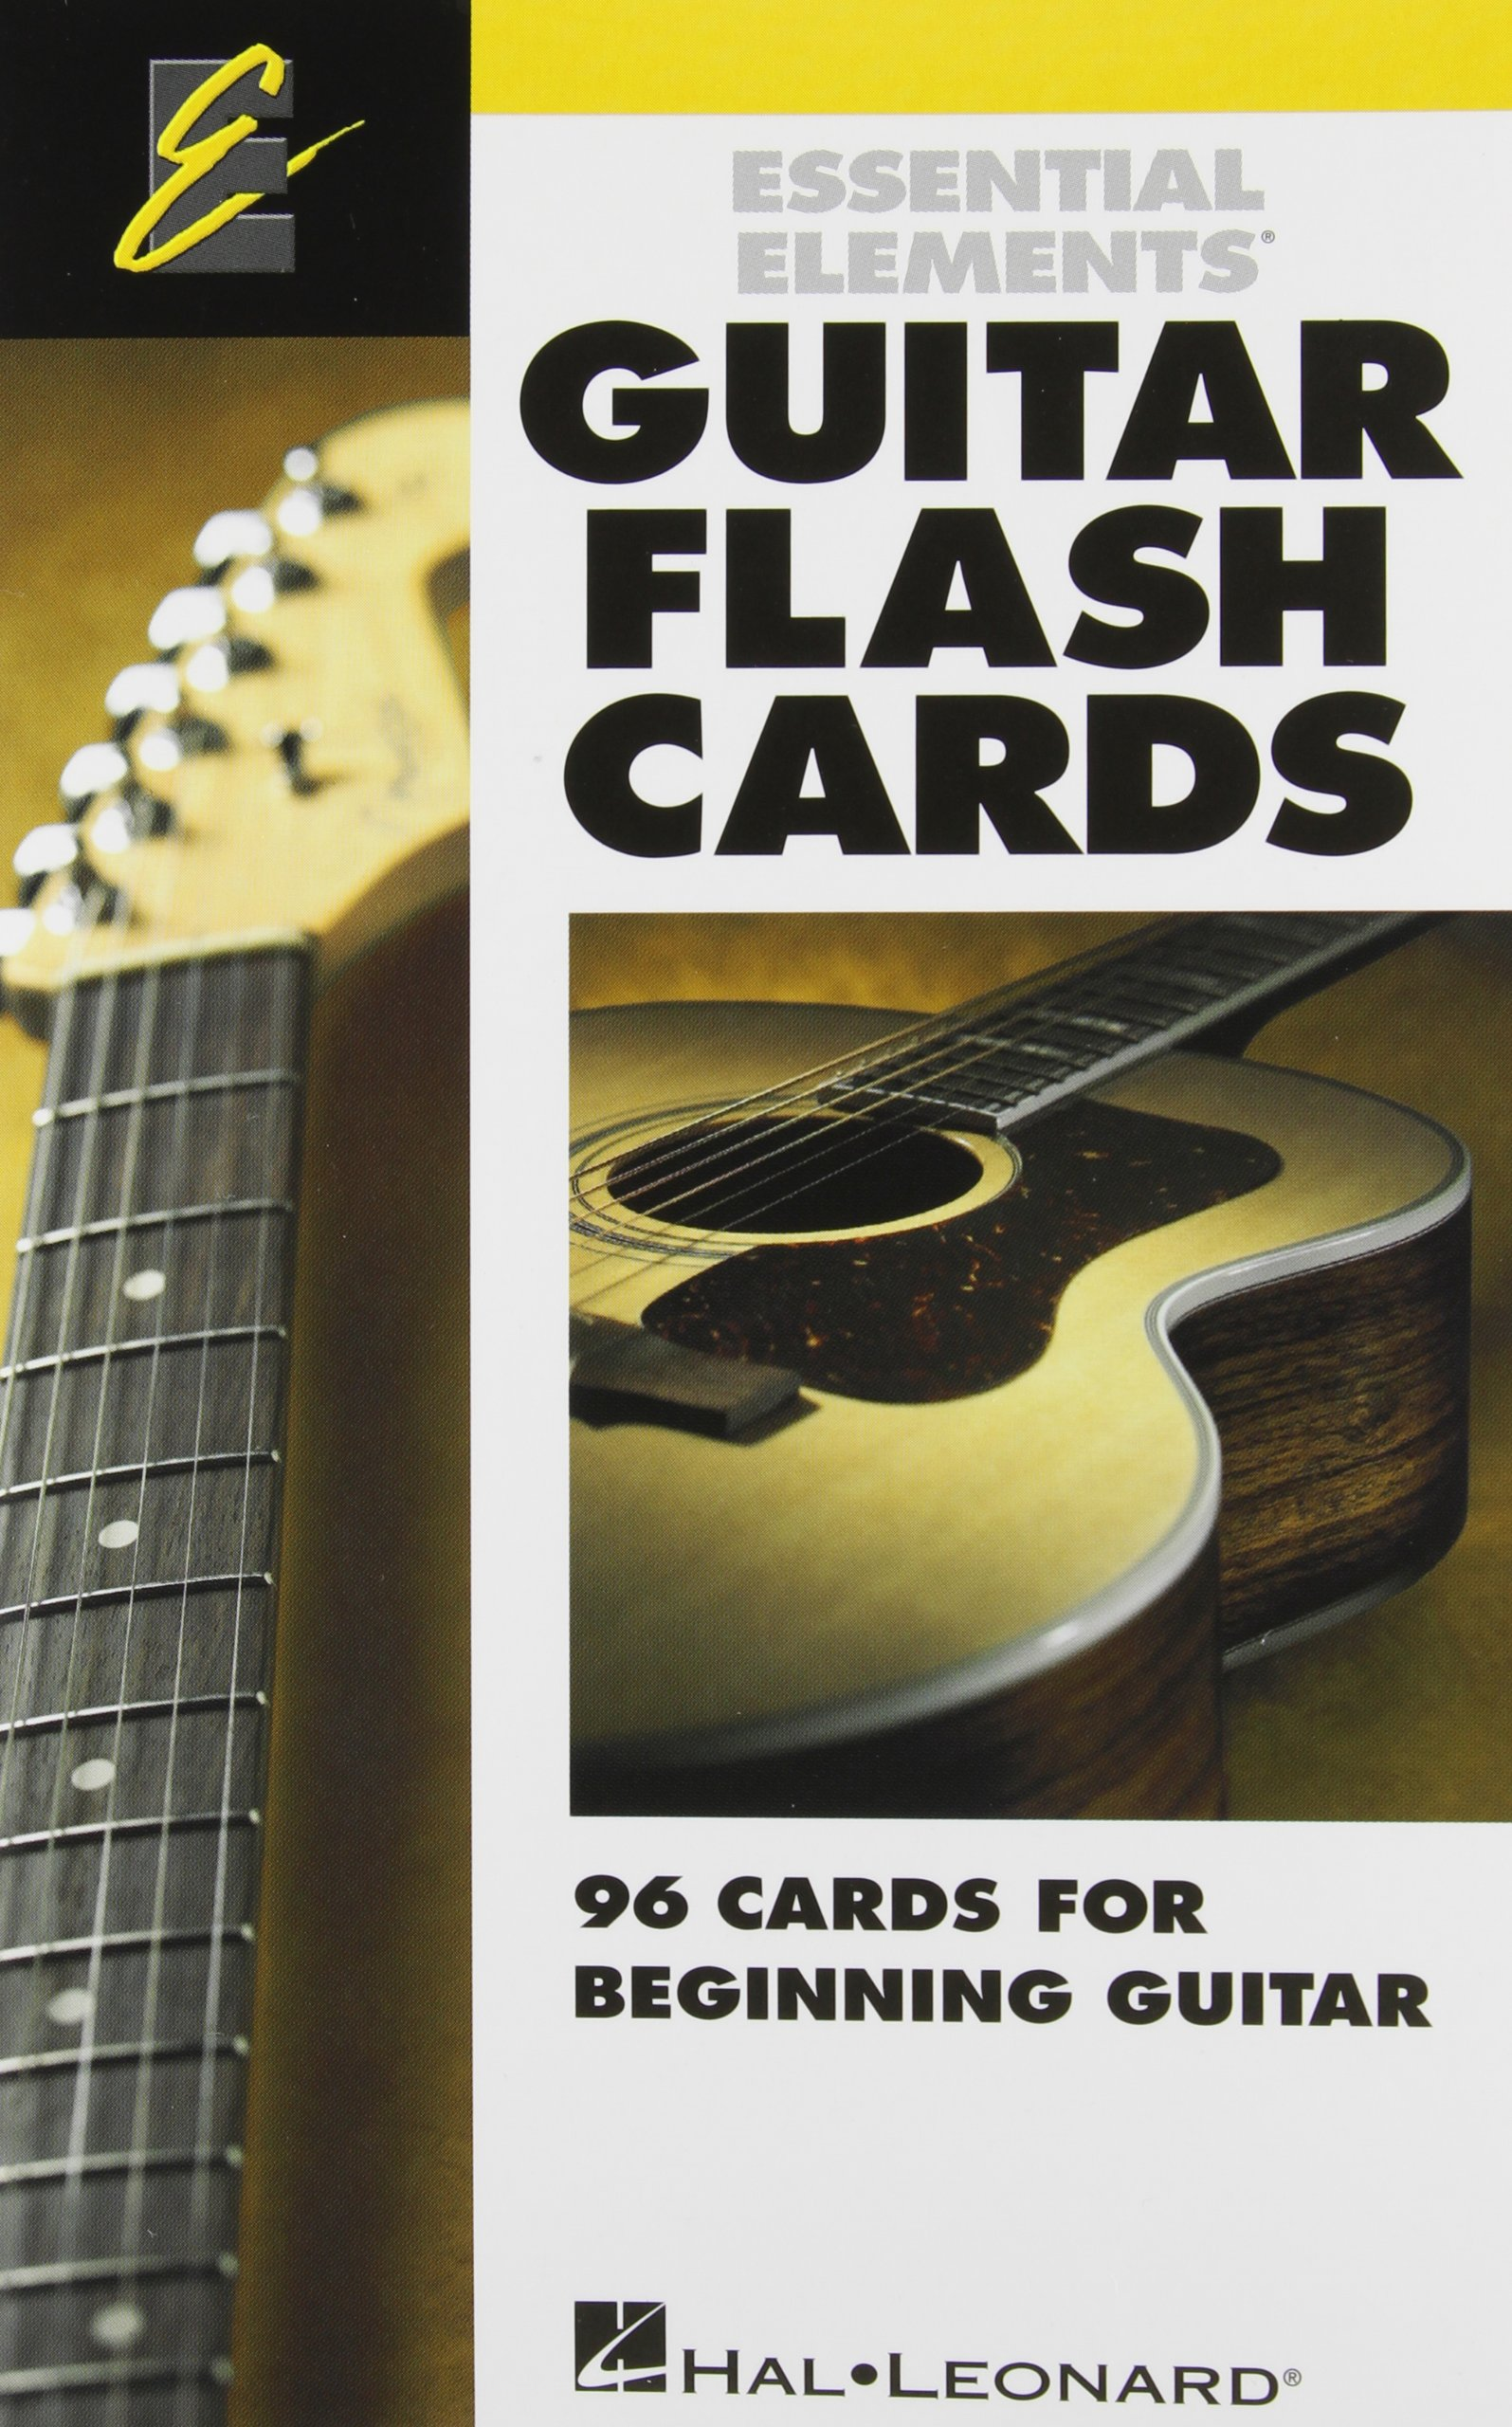 Essential Elements Guitar Flash Cards 96 Cards For Beginning